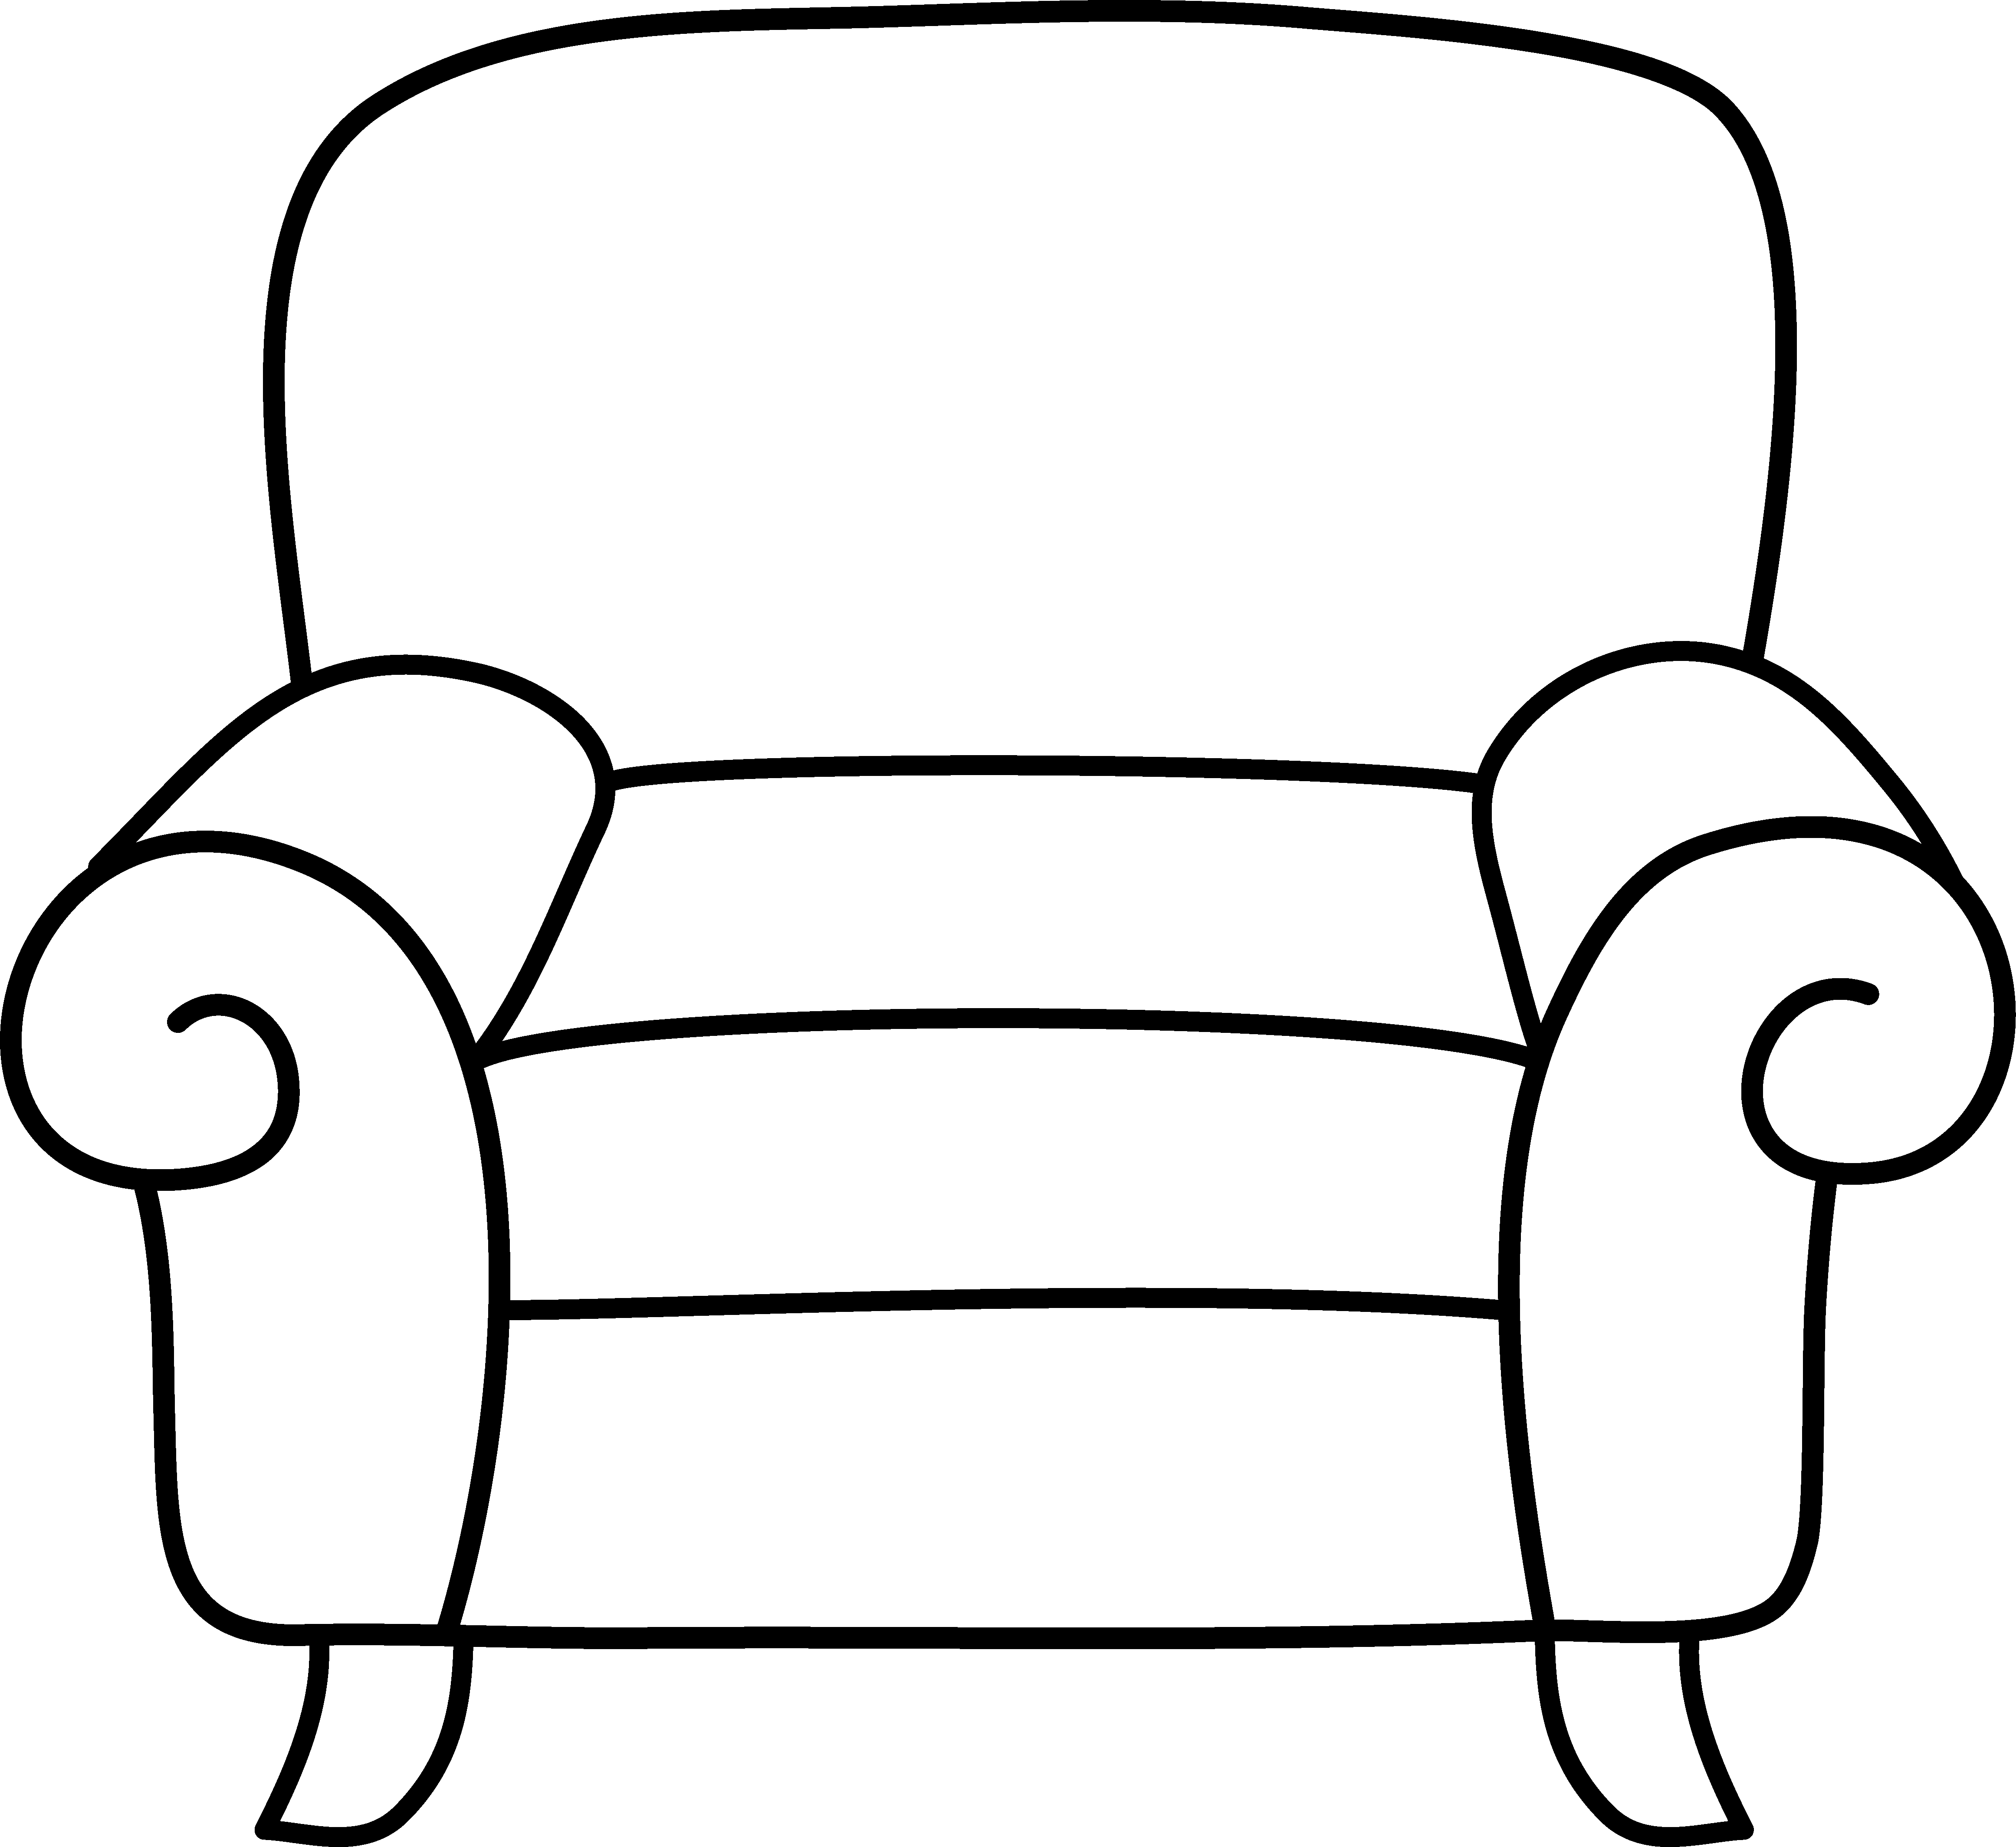 School chair clipart black and white graphic freeuse stock Fireplace Clipart Images | Free download best Fireplace Clipart ... graphic freeuse stock